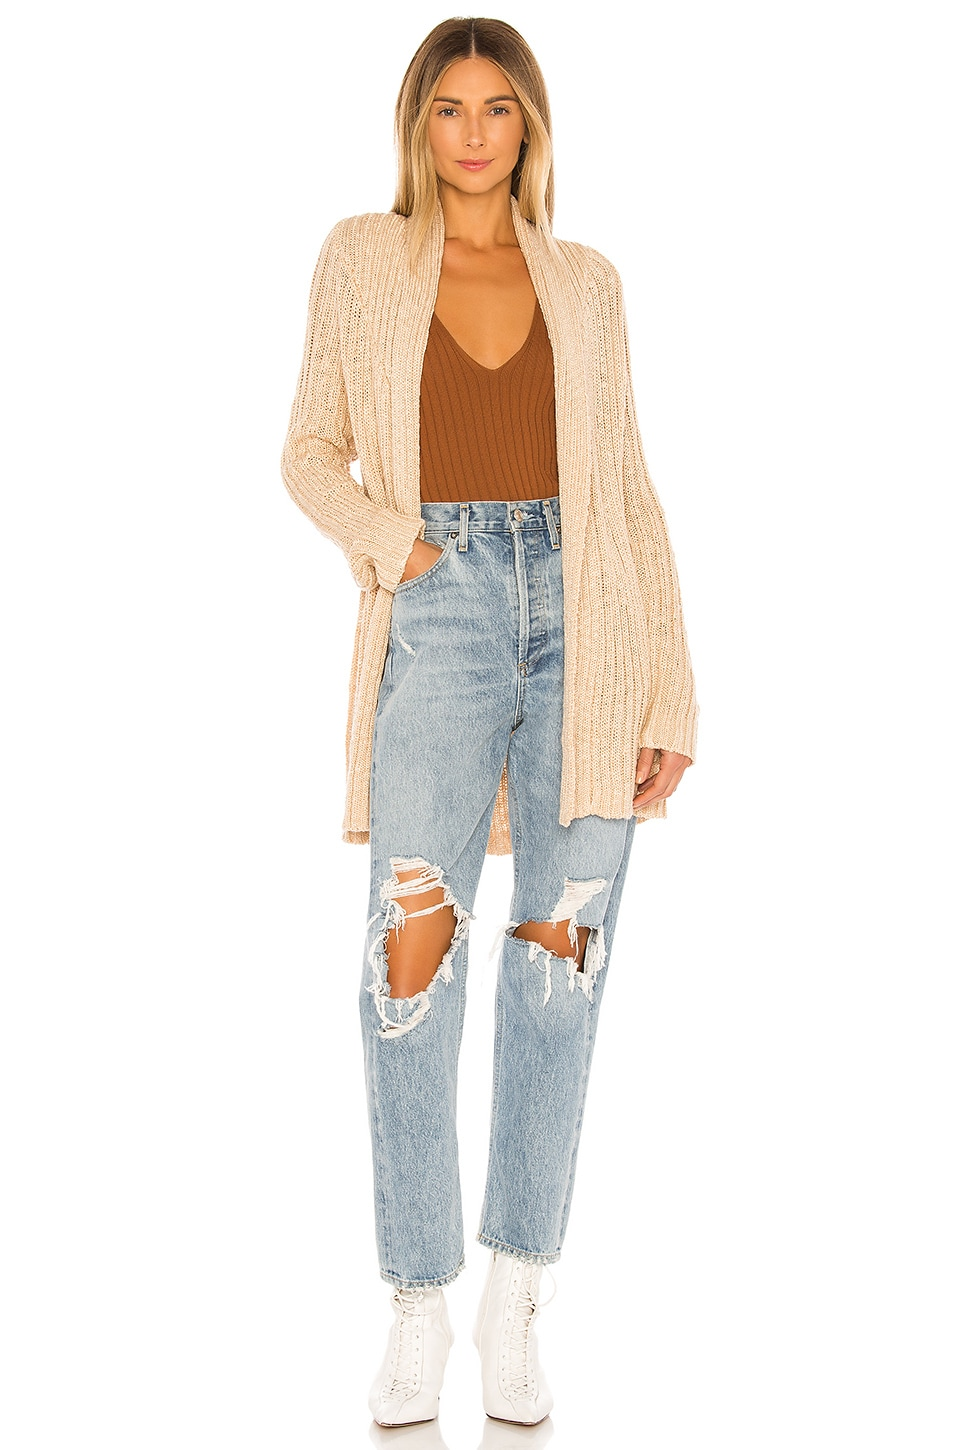 Lovers + Friends Dane Cardigan in Neutral